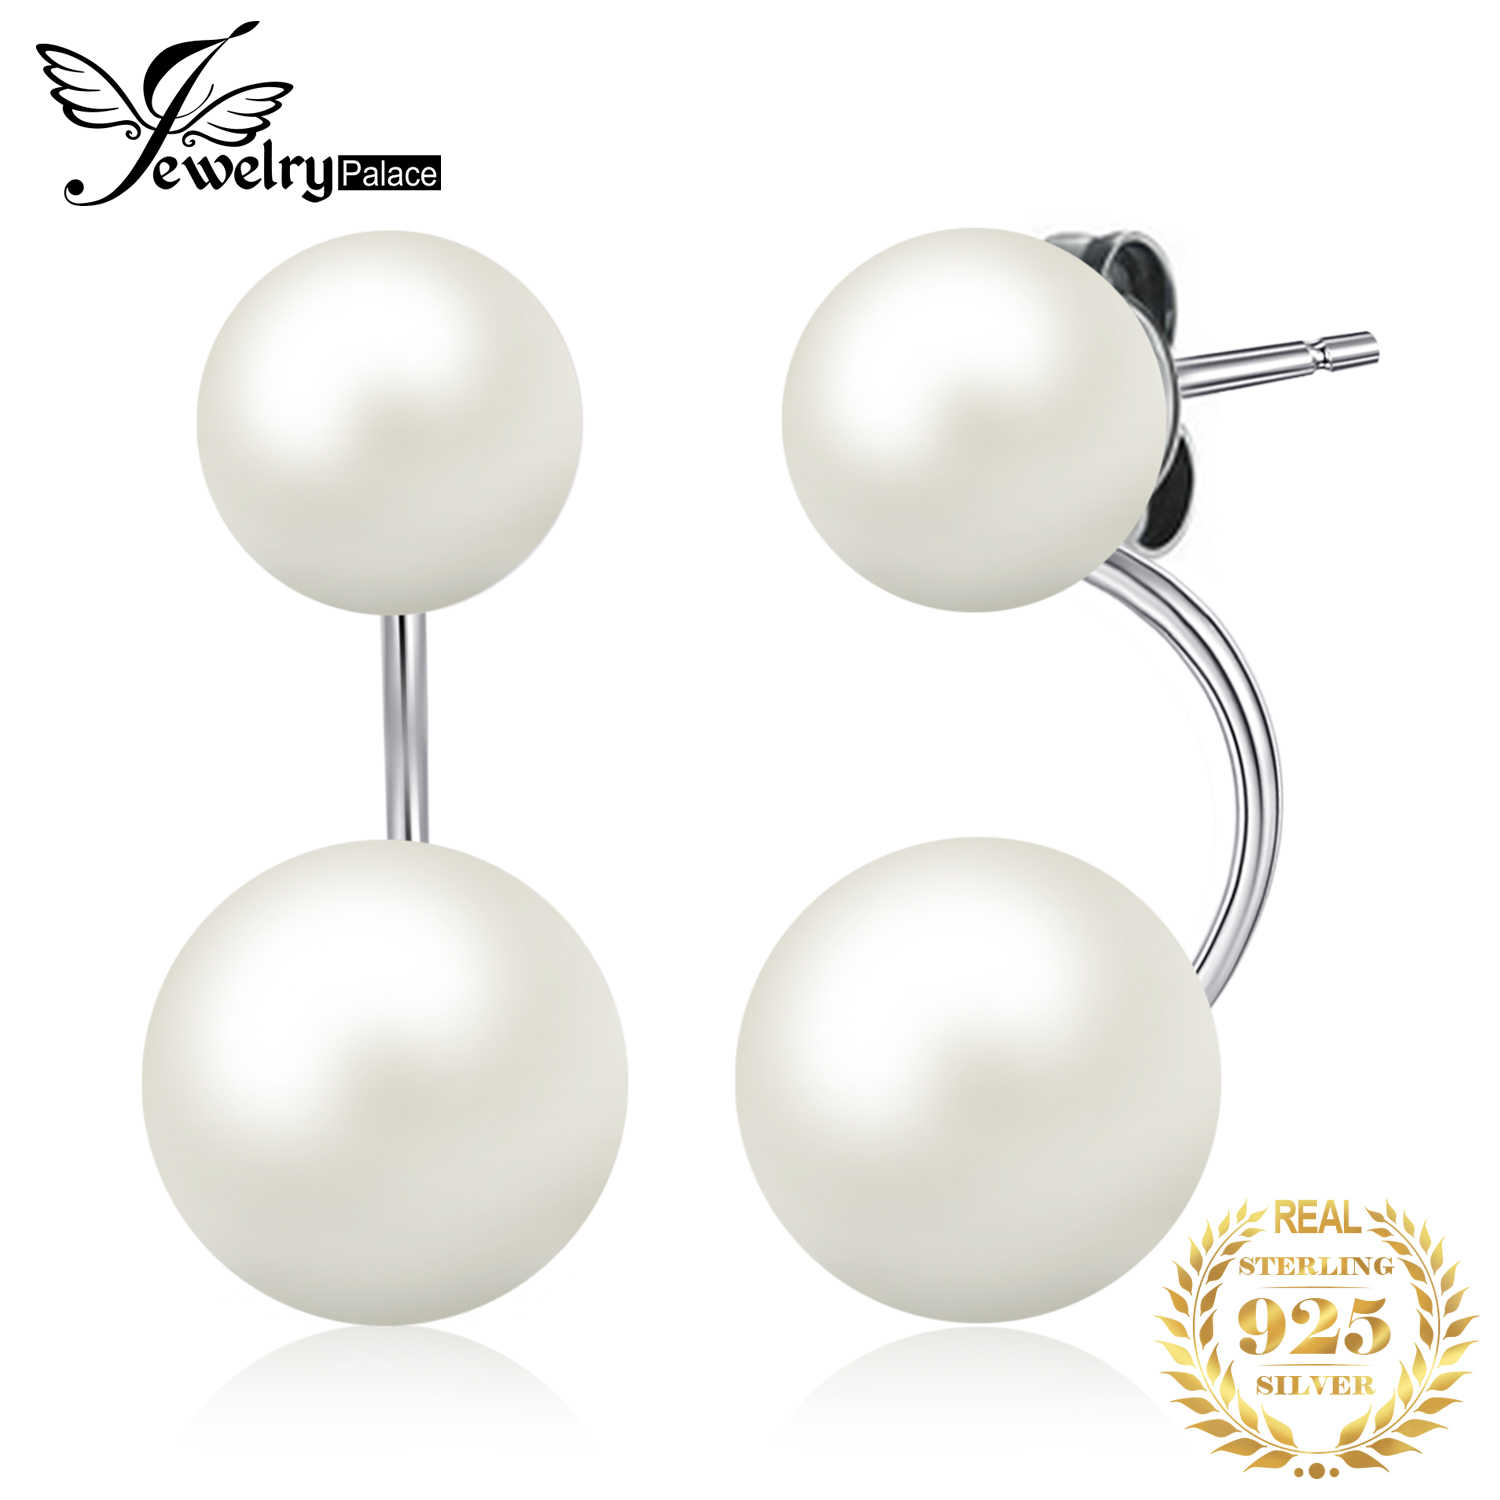 JewelryPalace Freshwater Pearl Jacket Stud Earrings 925 Sterling Silver Earrings For Women Korean Earrings Fashion Jewelry 2019